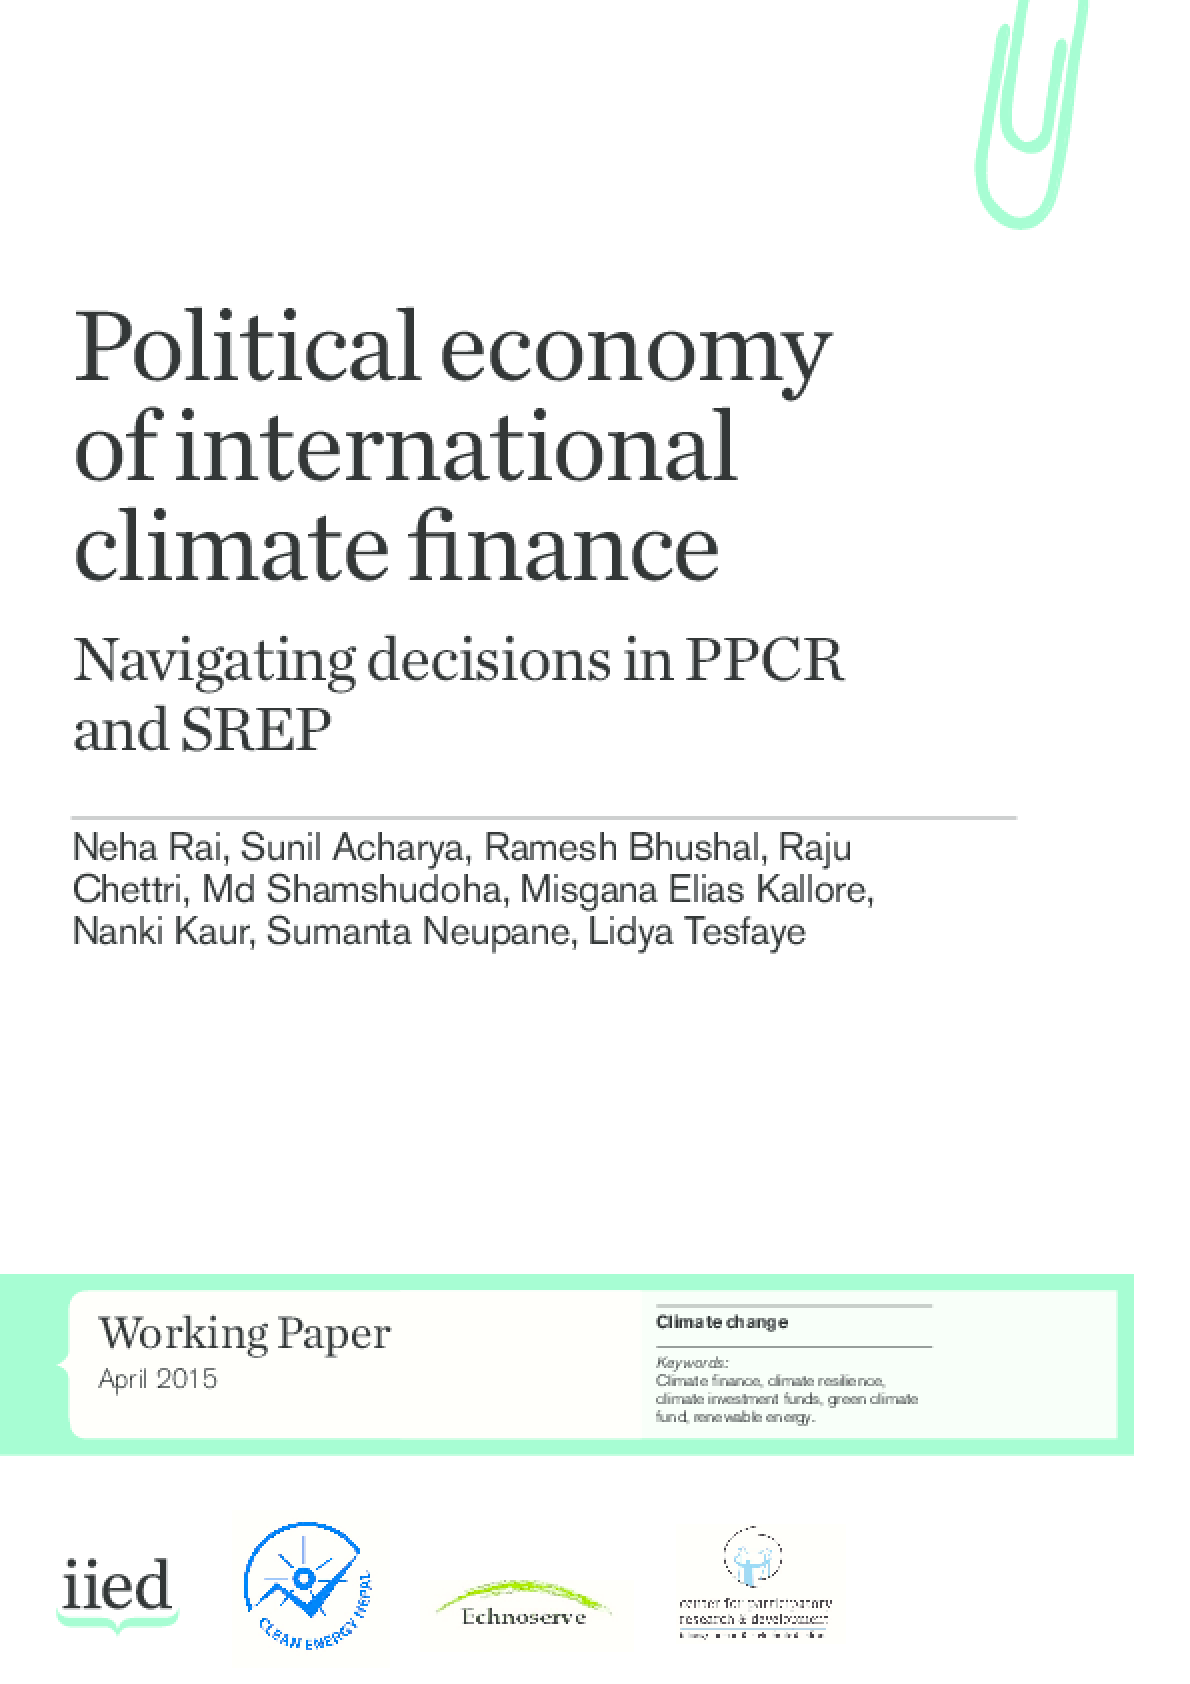 Political Economy of International Climate Finance: Navigating Decisions in PPCR and SREP